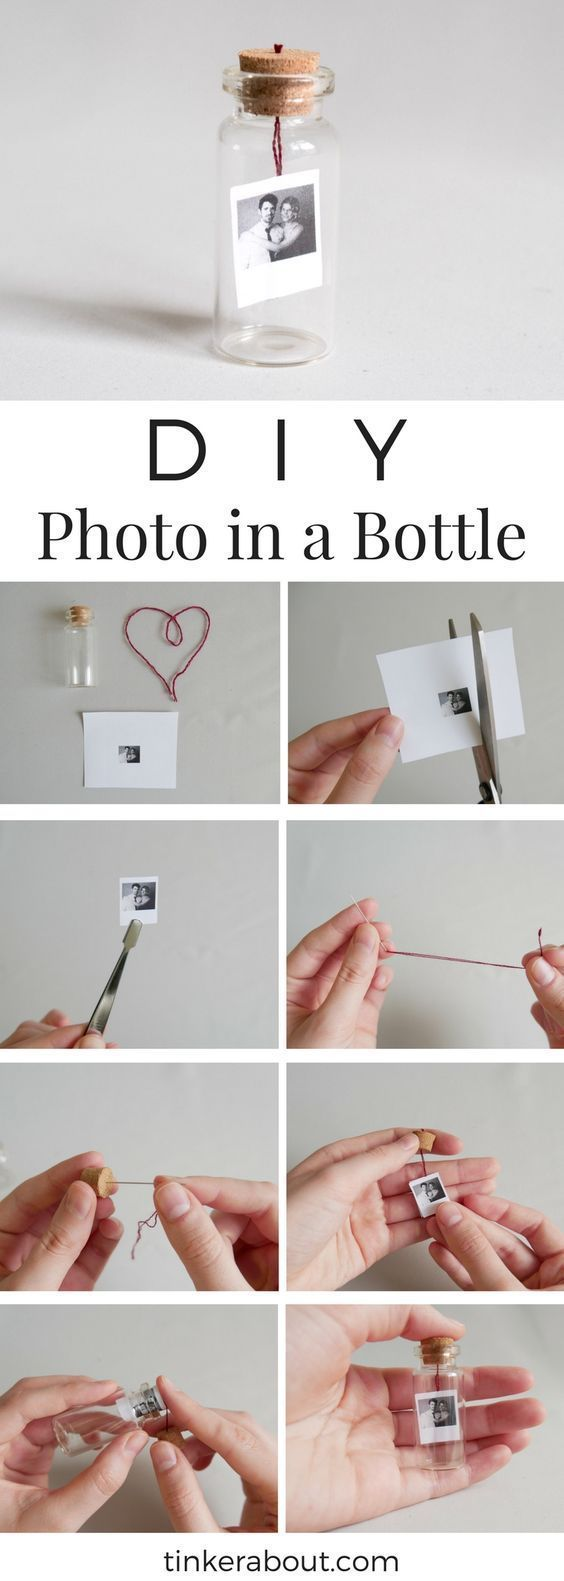 DIY Tiny PhotoMessage in a Bottle as an Anniversary Gift Idea  DIY Tiny PhotoMessage in a Bottle as Valentines Day Gift Idea